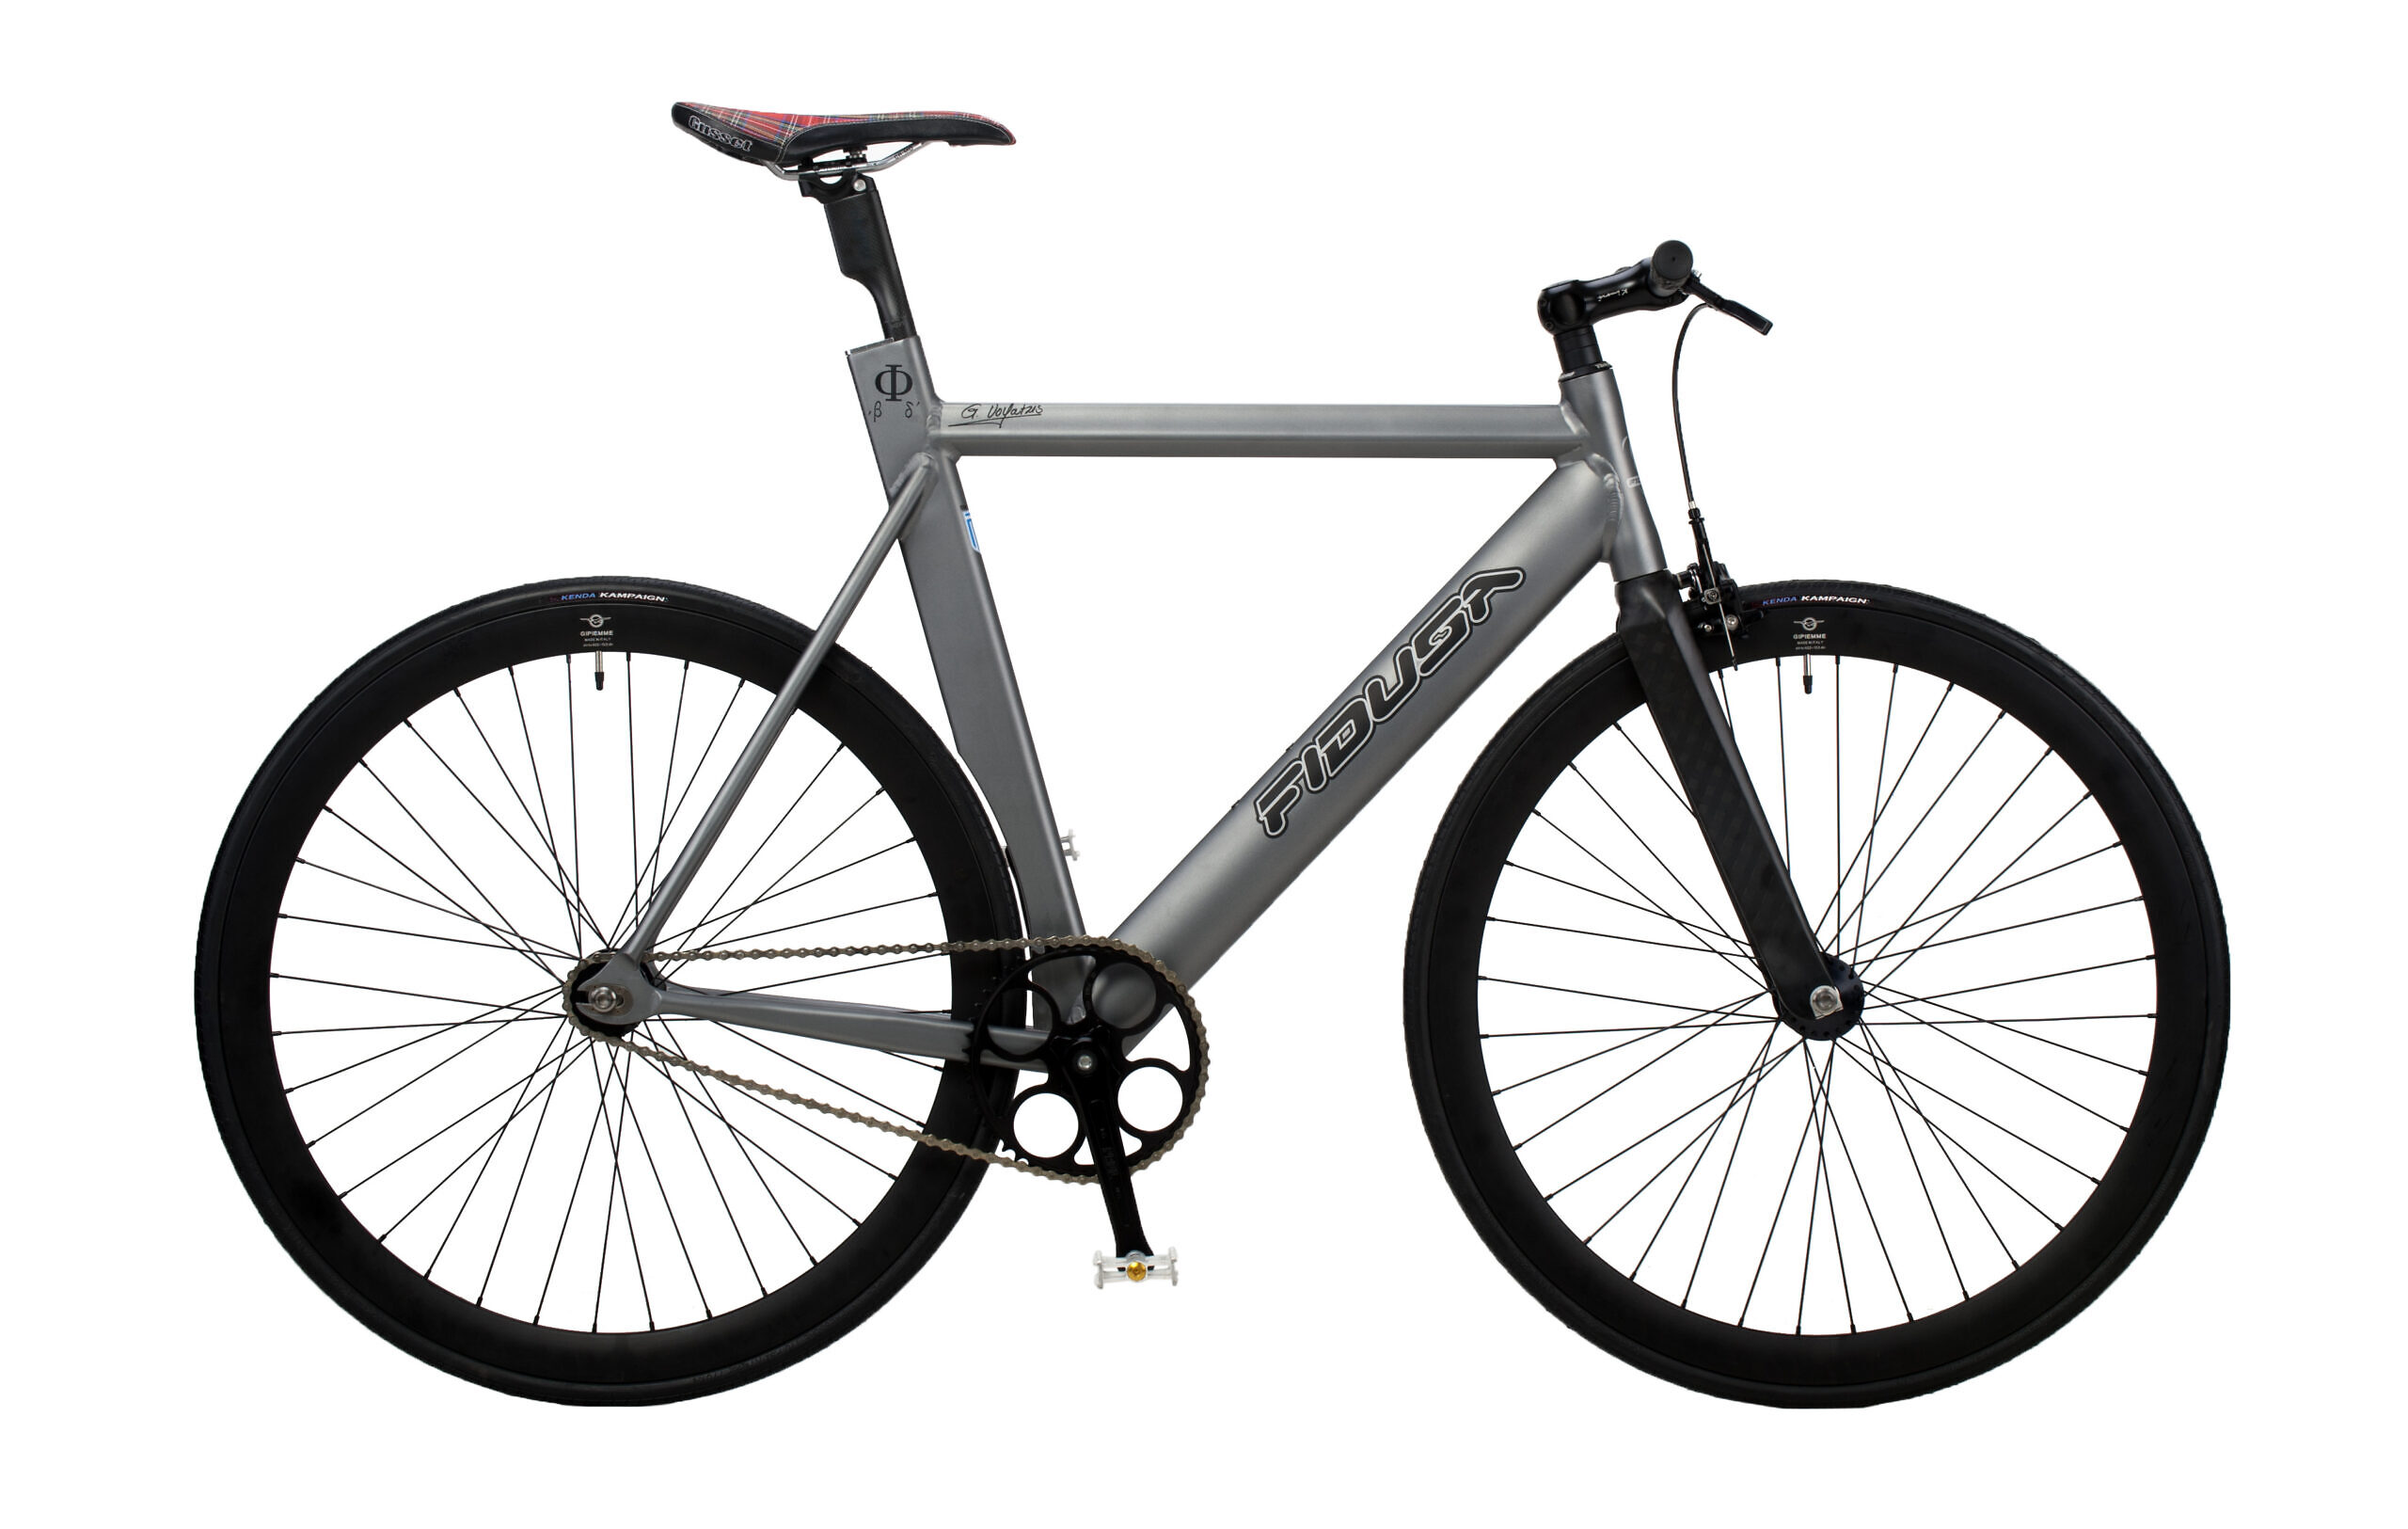 ALLOY-GRAY-TT-LAND-clear-scaled Alloy Aero Single Speed